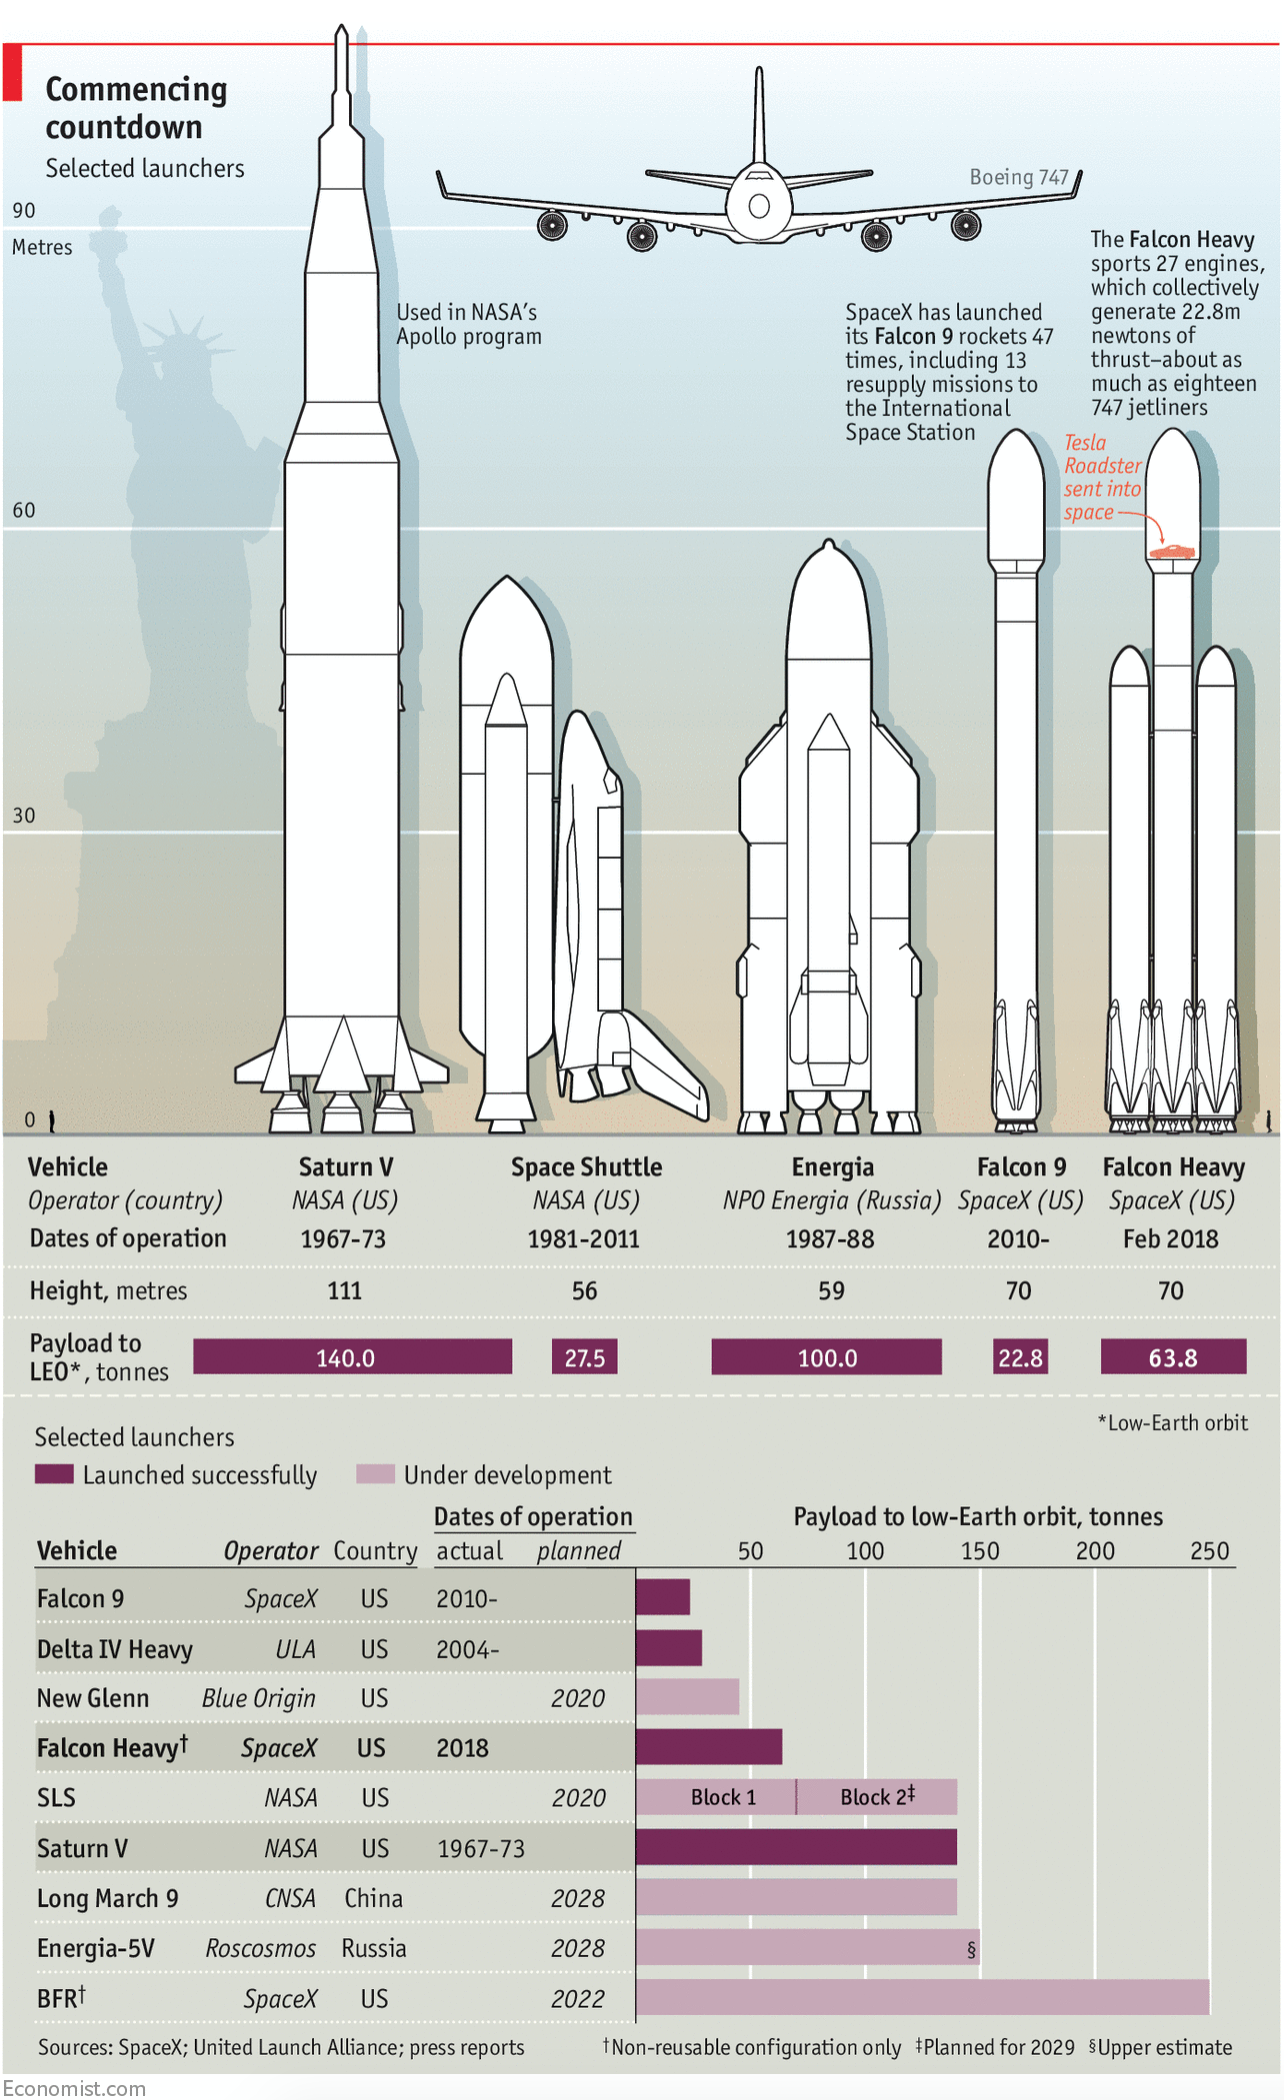 It's big and powerful, but SpaceX still has a long way to go…